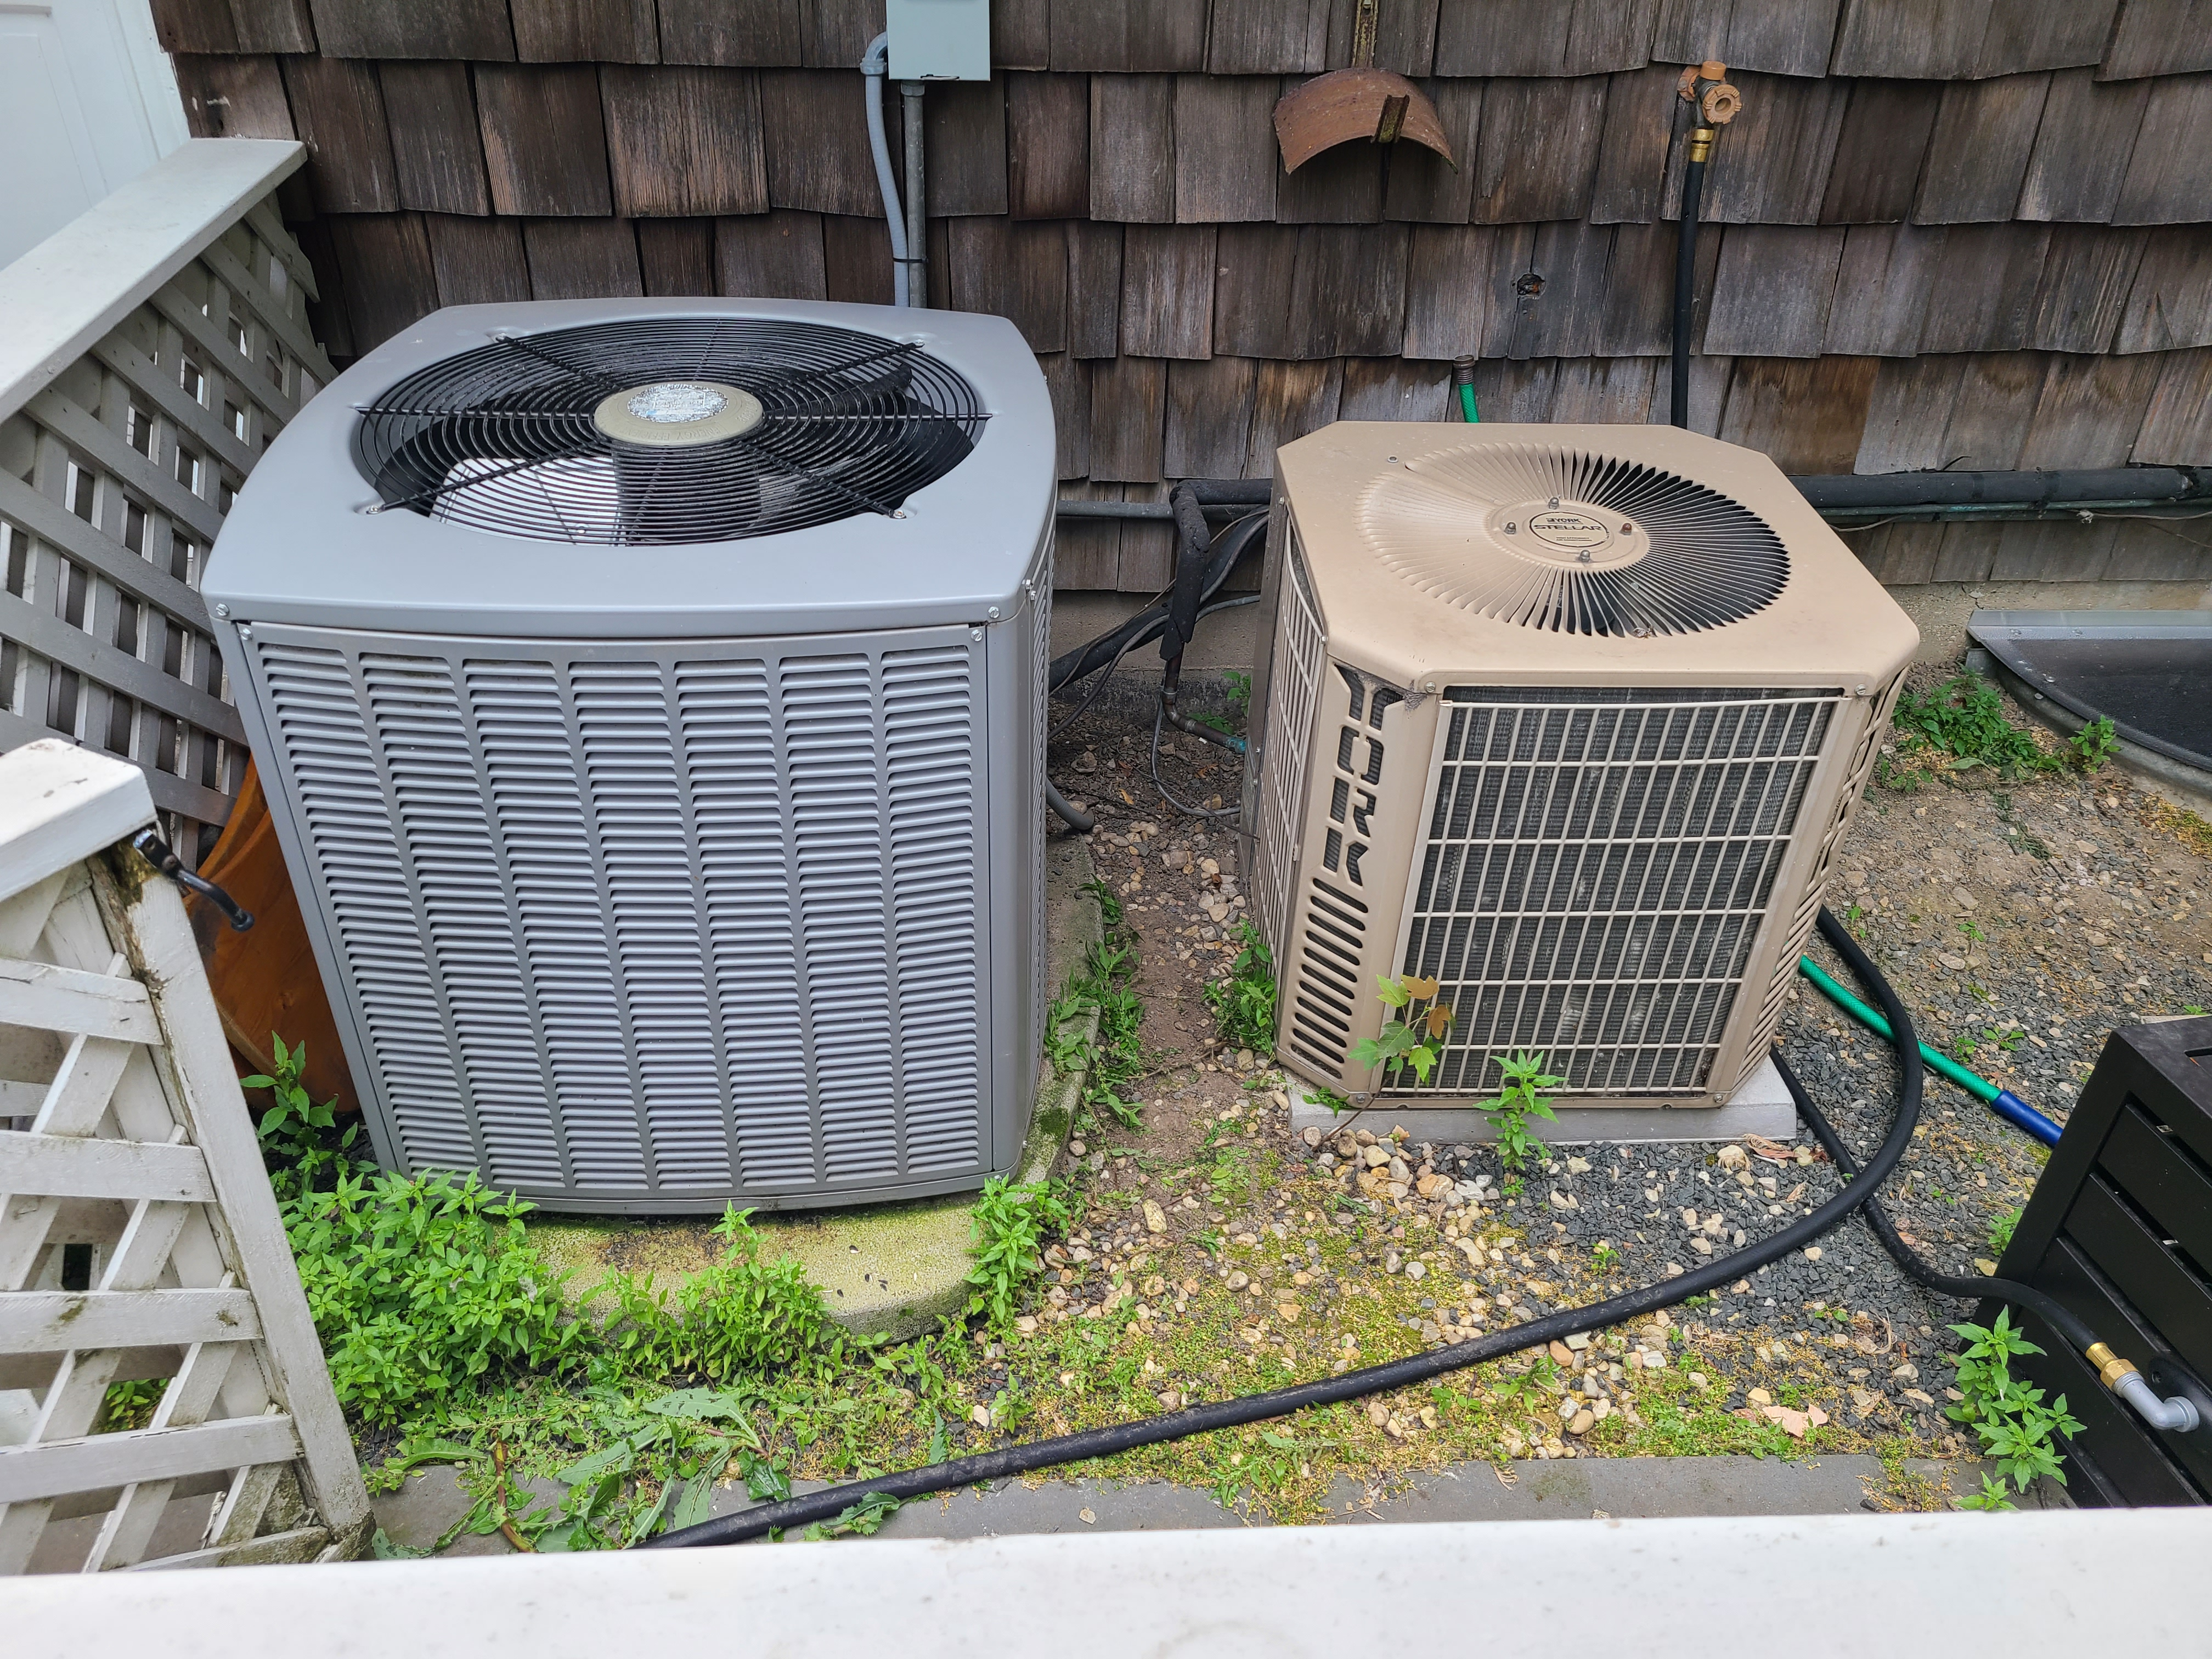 Maintenance on ac systems   2 units york and Armstrong  beautiful day in Winnetka